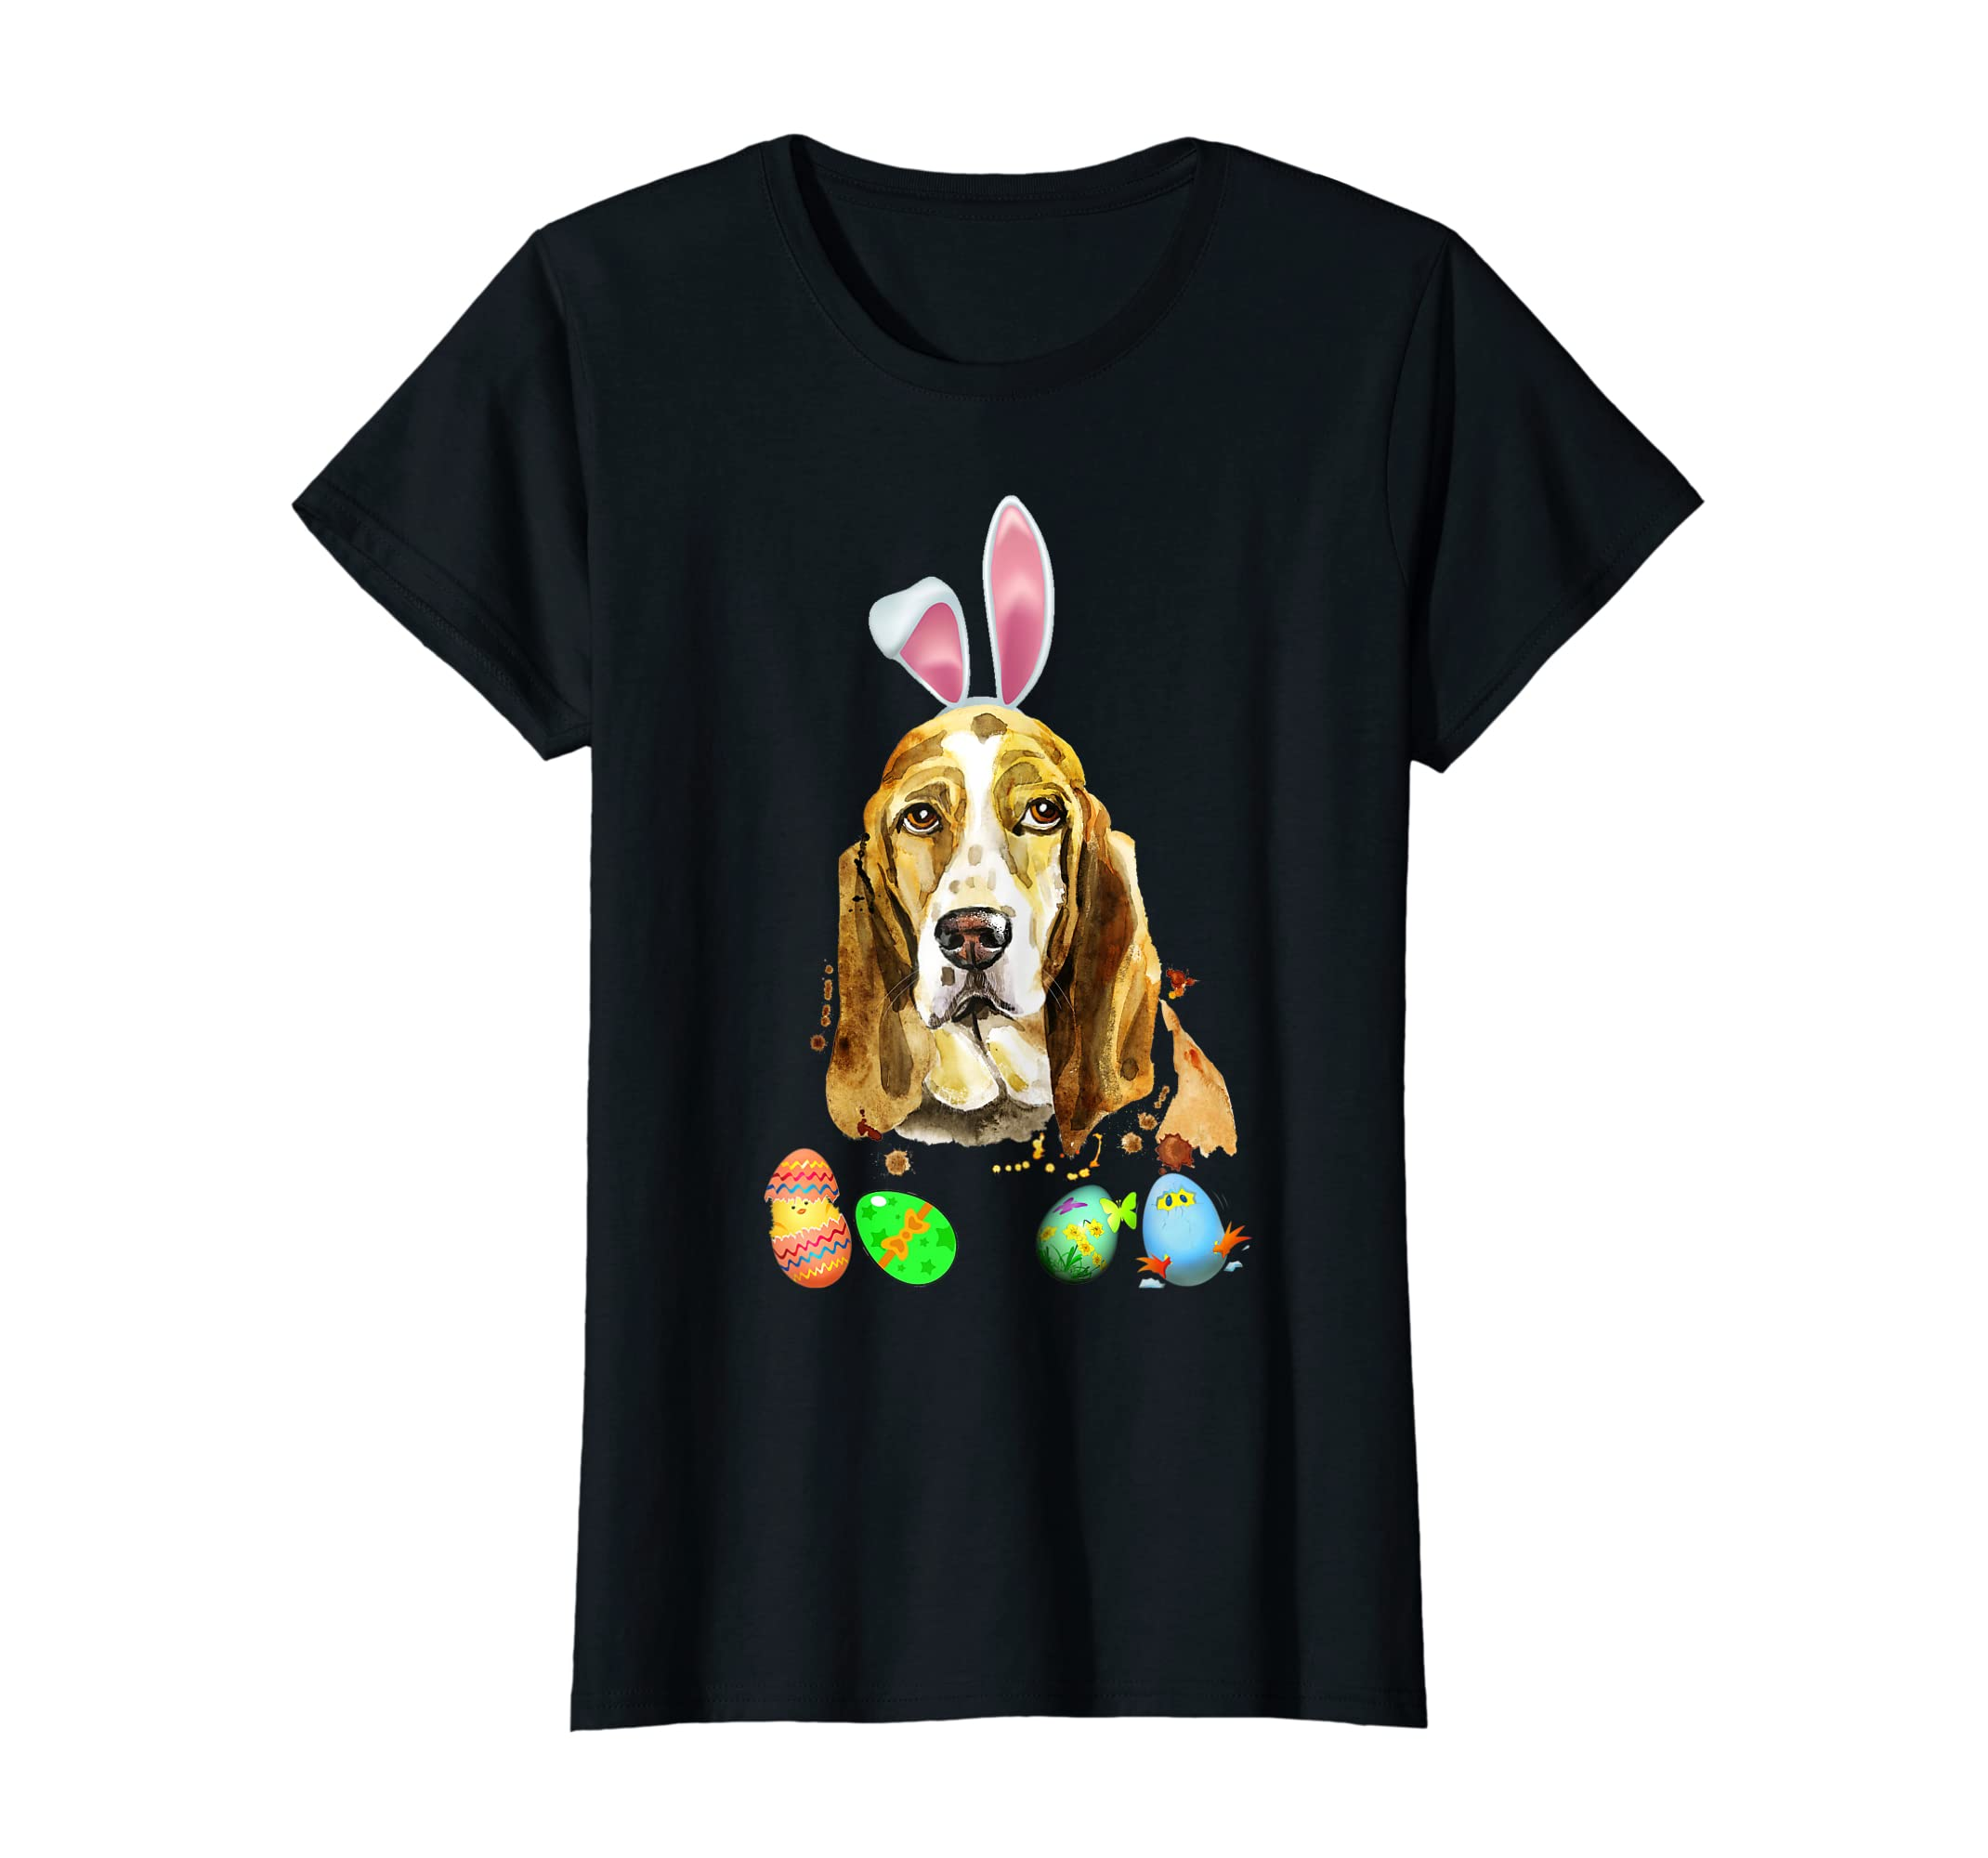 c0ec5653 Amazon.com: Cute Easter Basset Hound Bunny Ears & Eggs T Shirt Kids:  Clothing